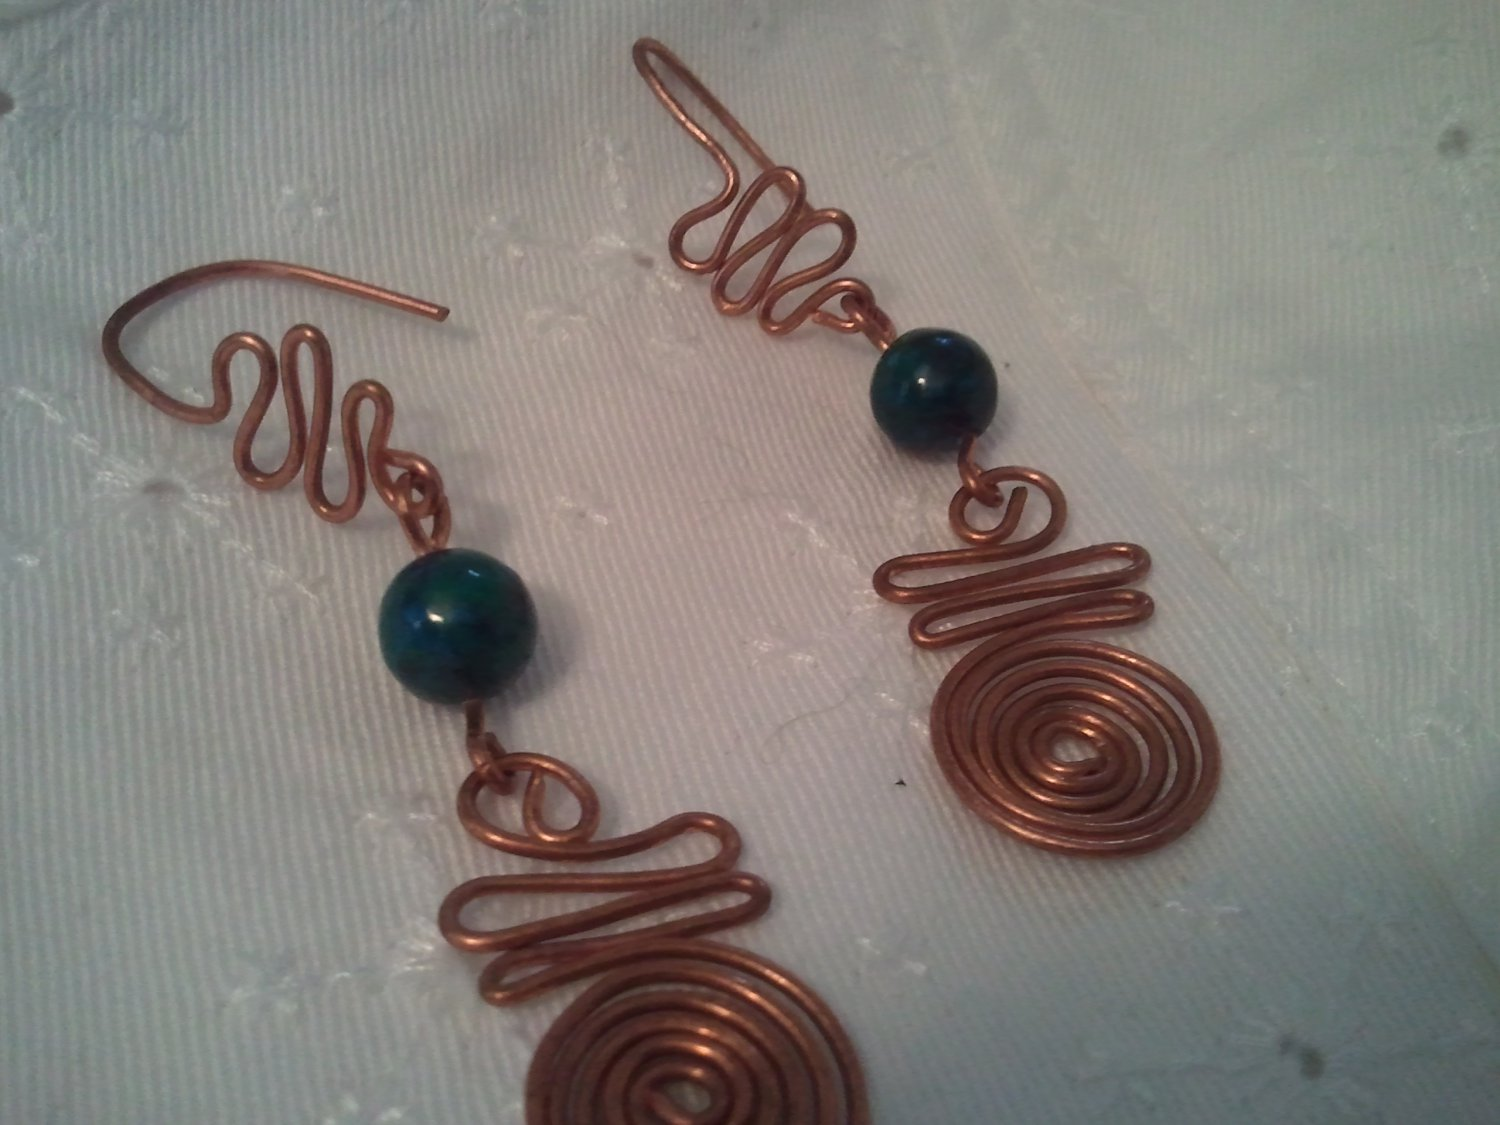 Handcrafted Copper Wire and Genuine Chrysoprase Beads Earrings